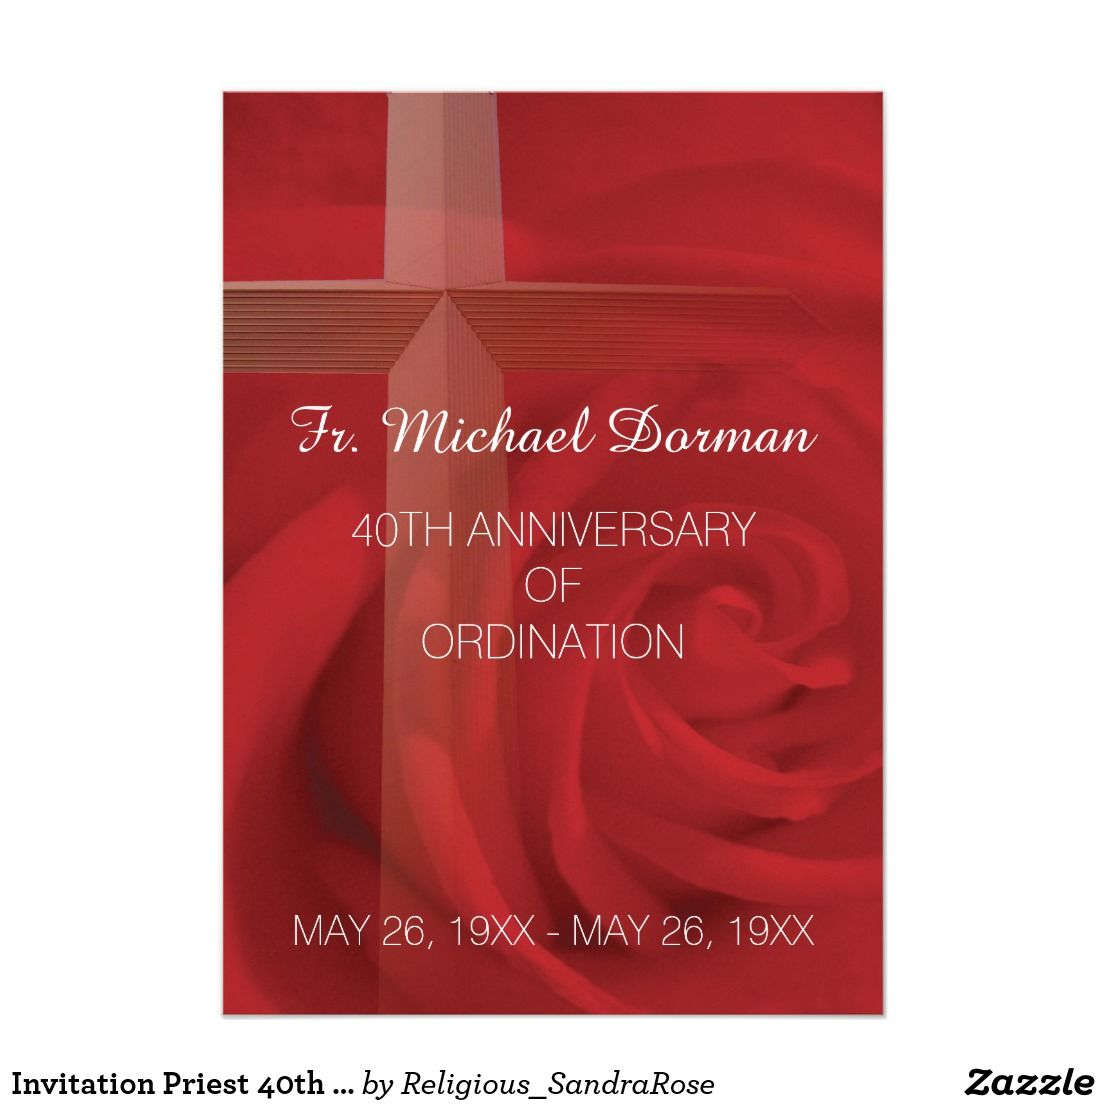 Invitation Priest 40th Anniversary Ordination Red Invitation